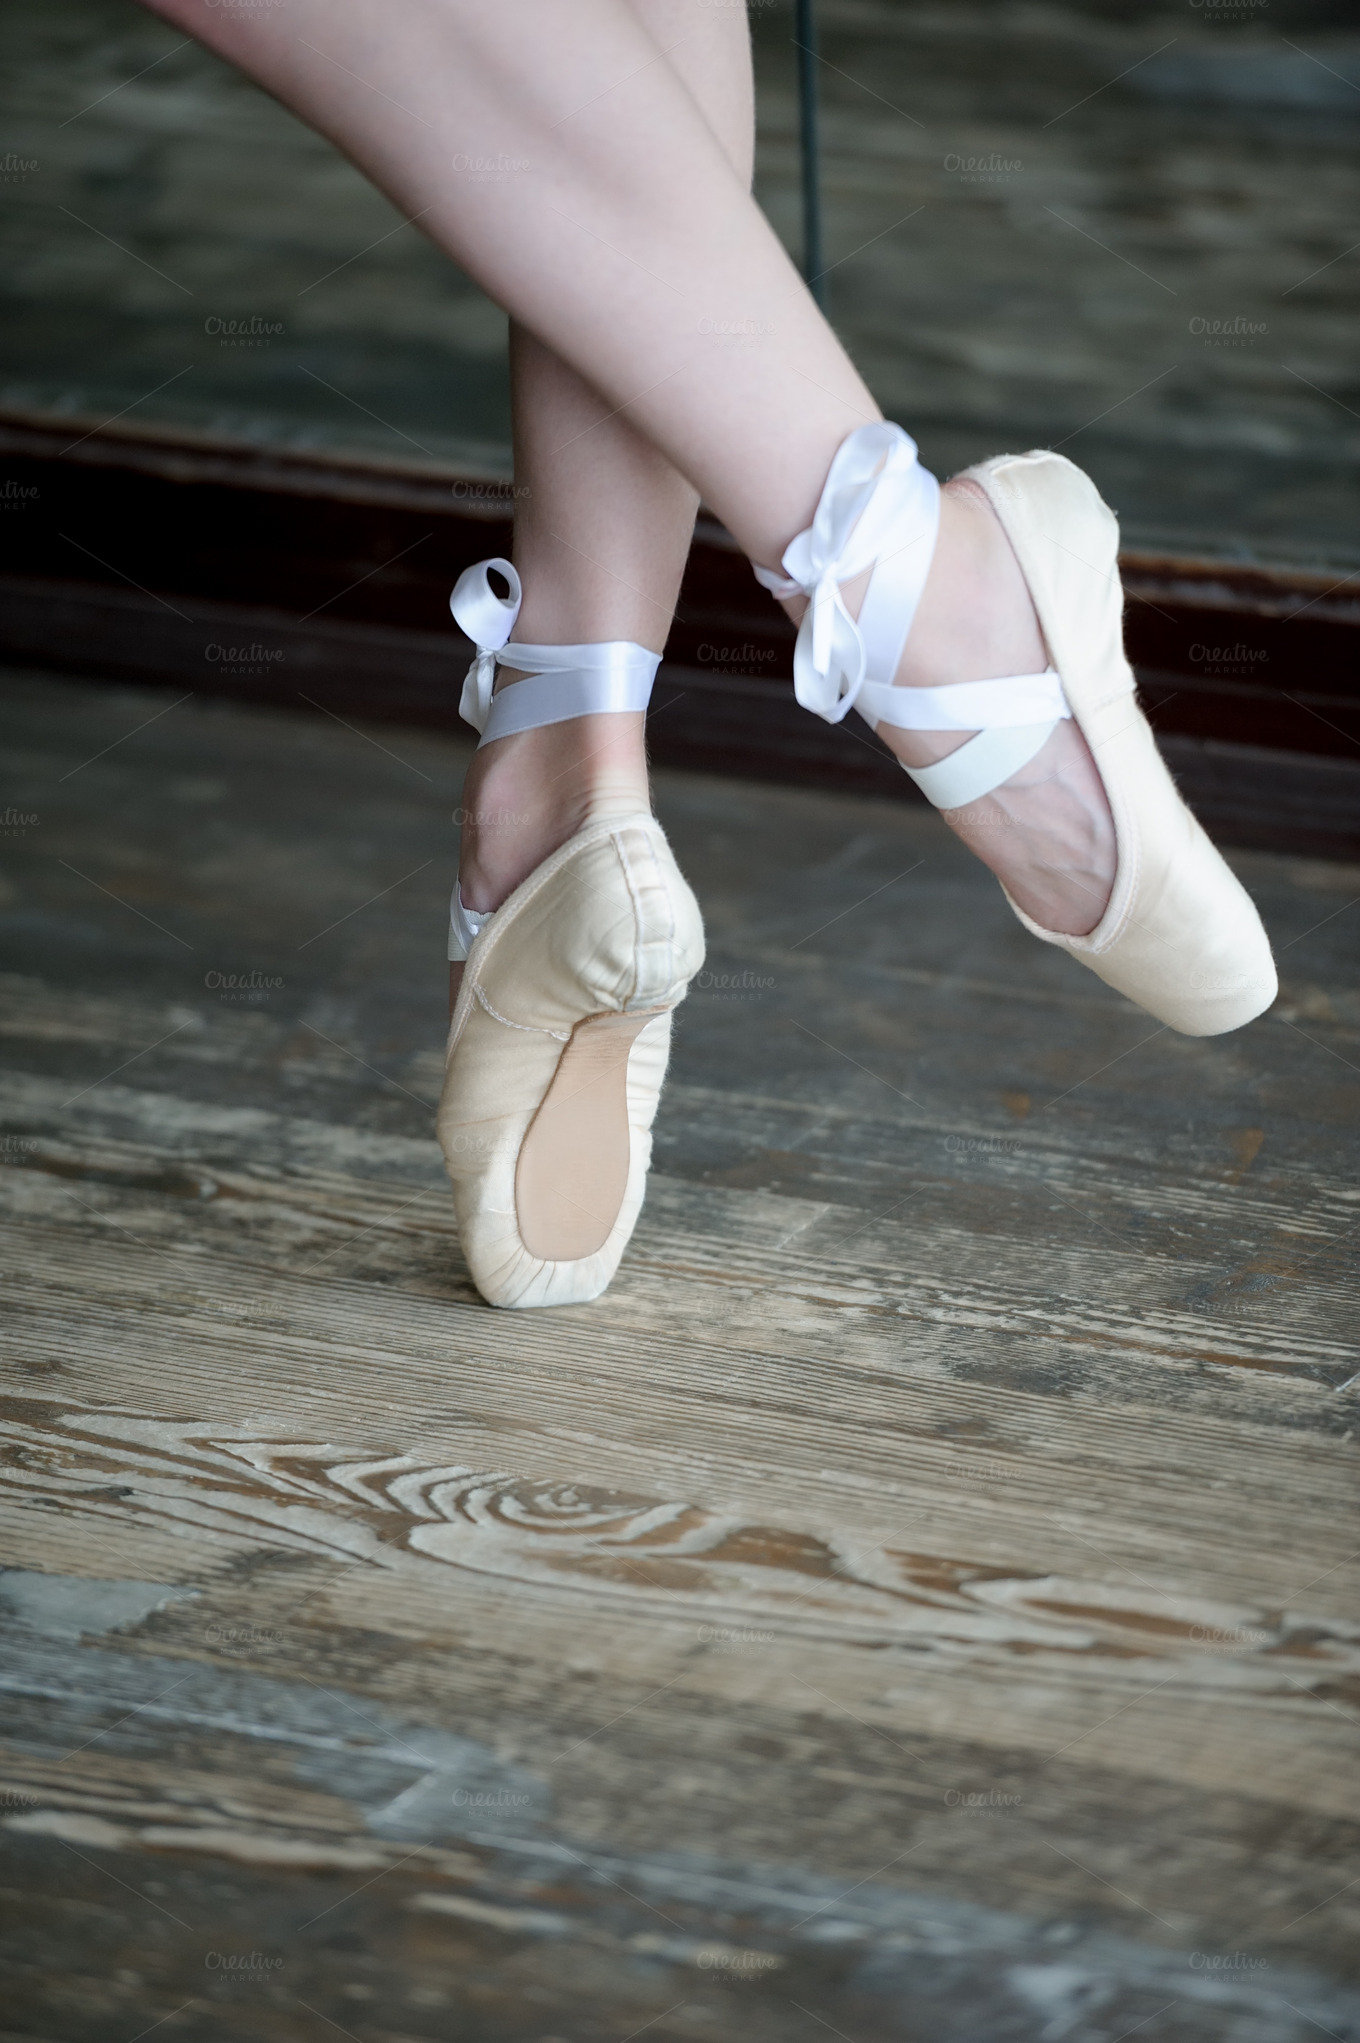 Person On Pointe Shoes